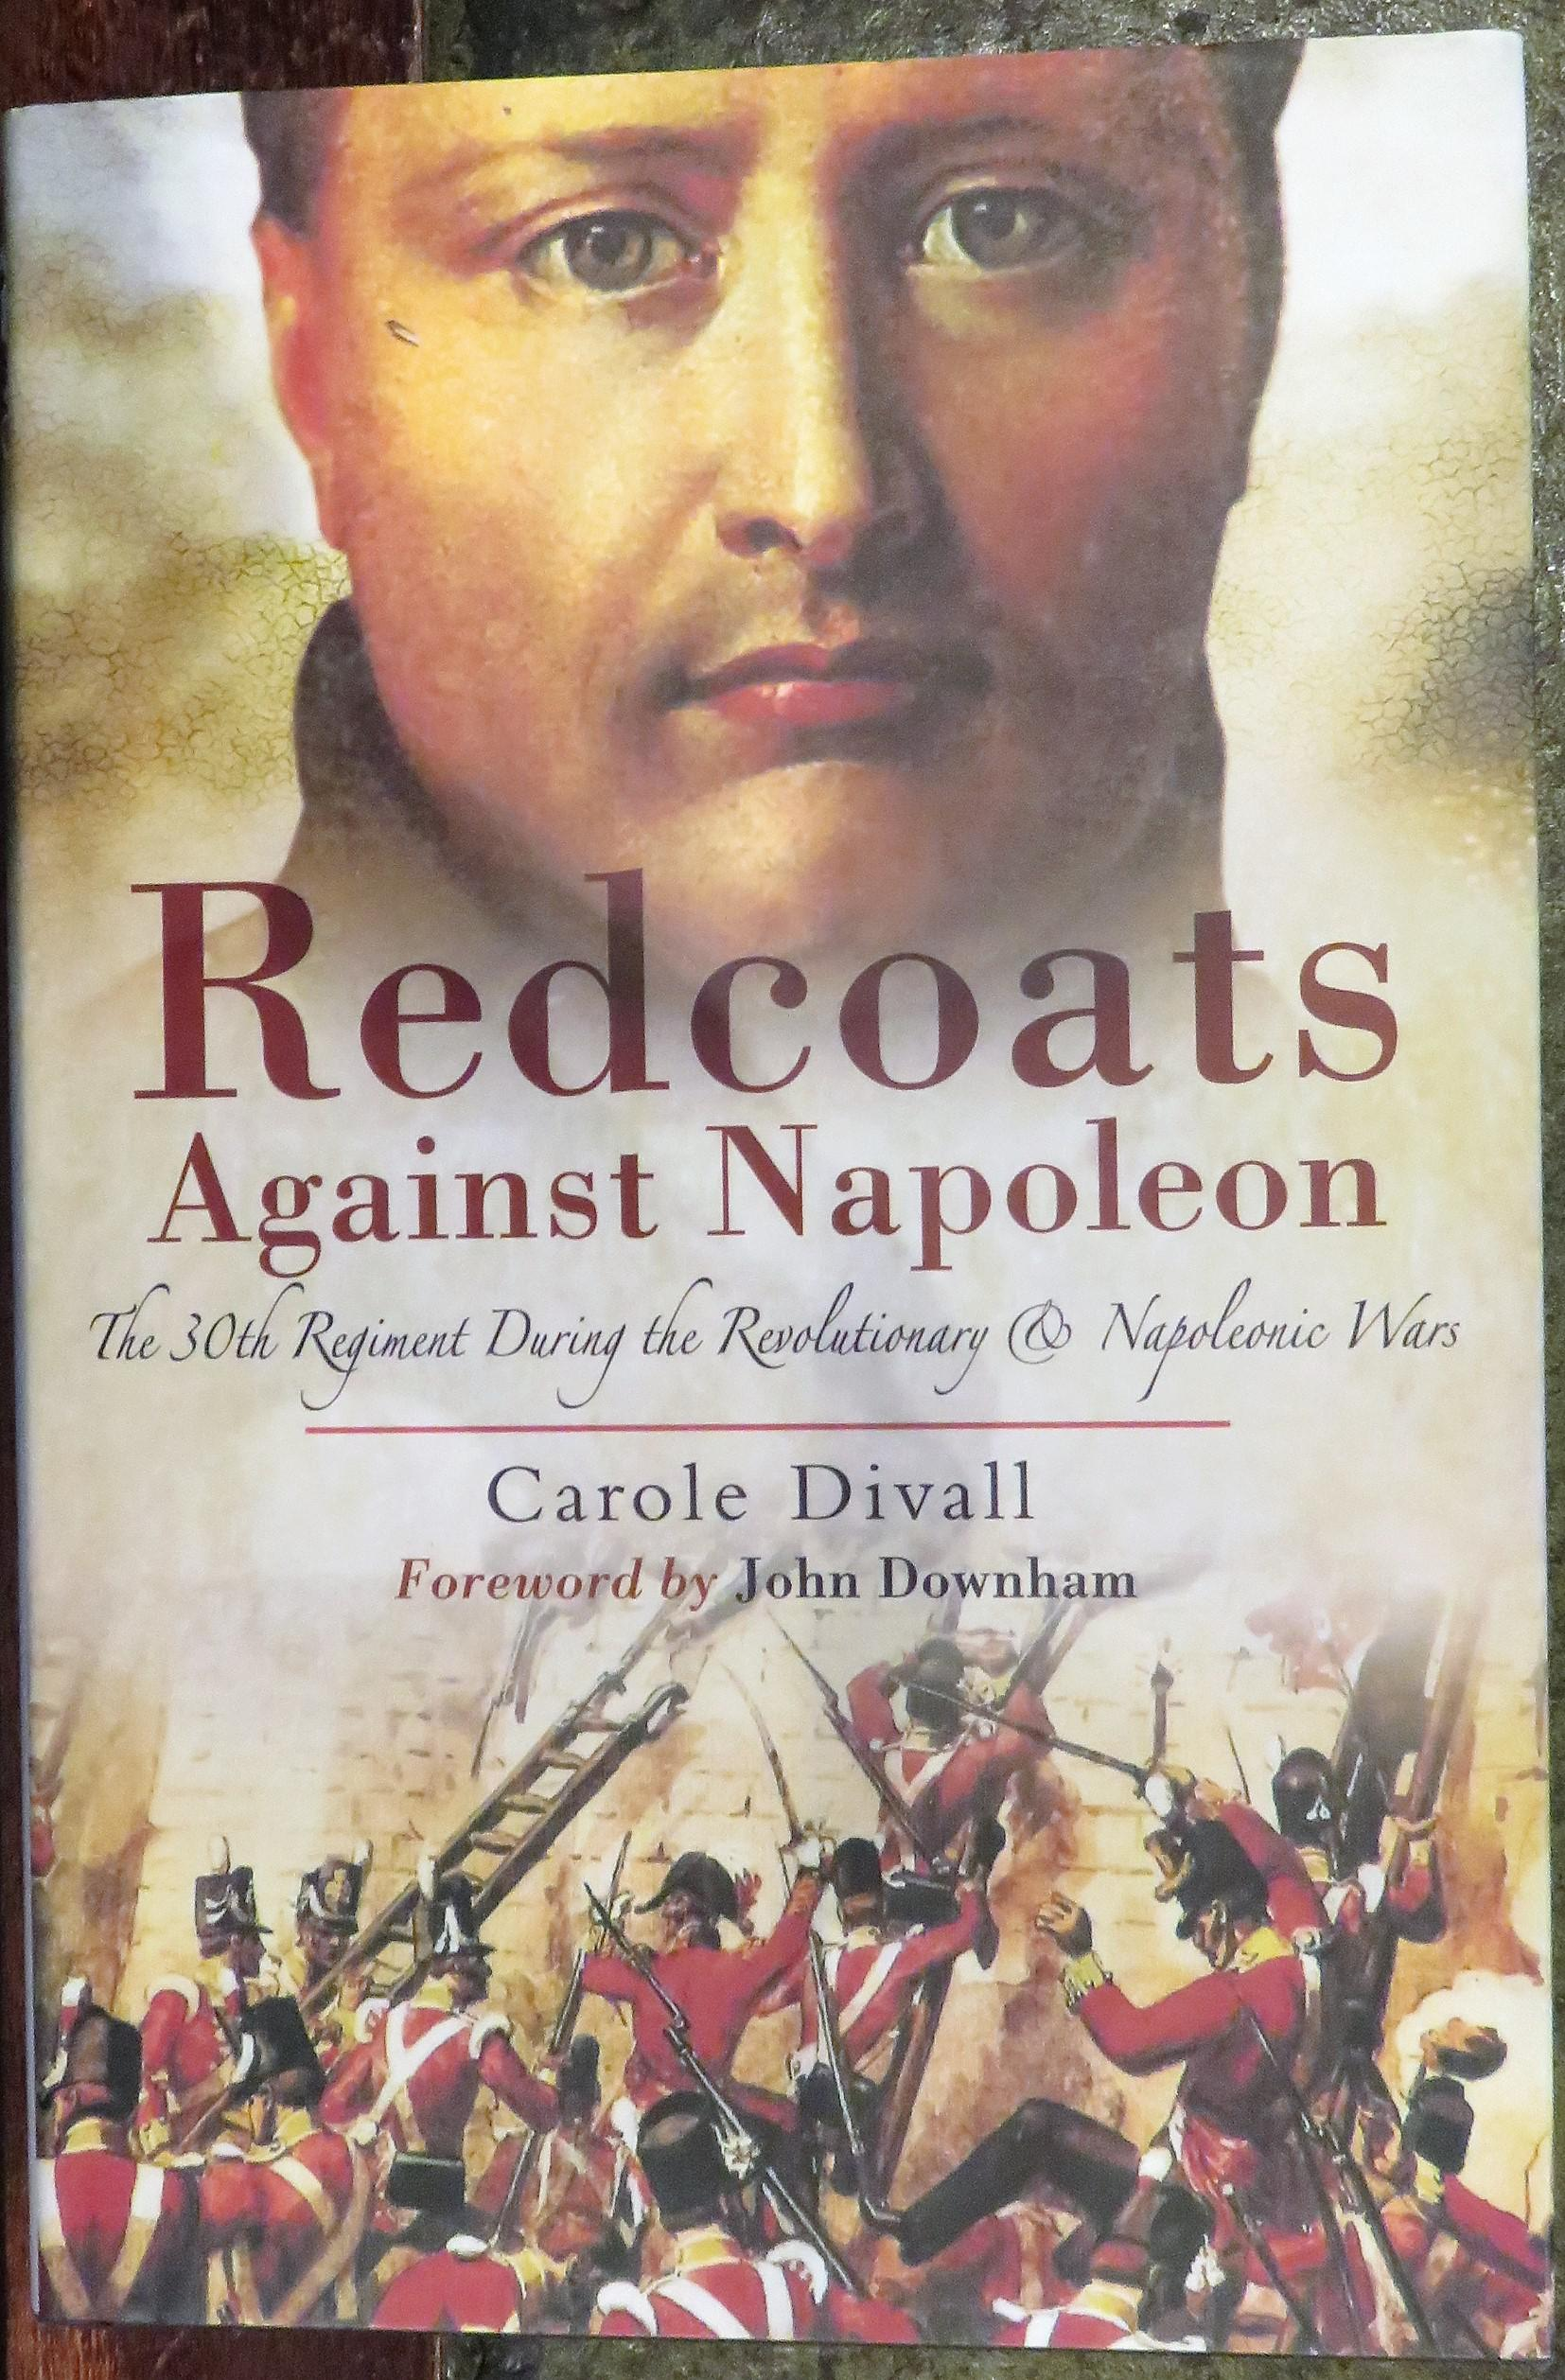 SIGNED Redcoats Against Napoleon The 20th Regiment During the Revolutionary and Napoleonic Wars